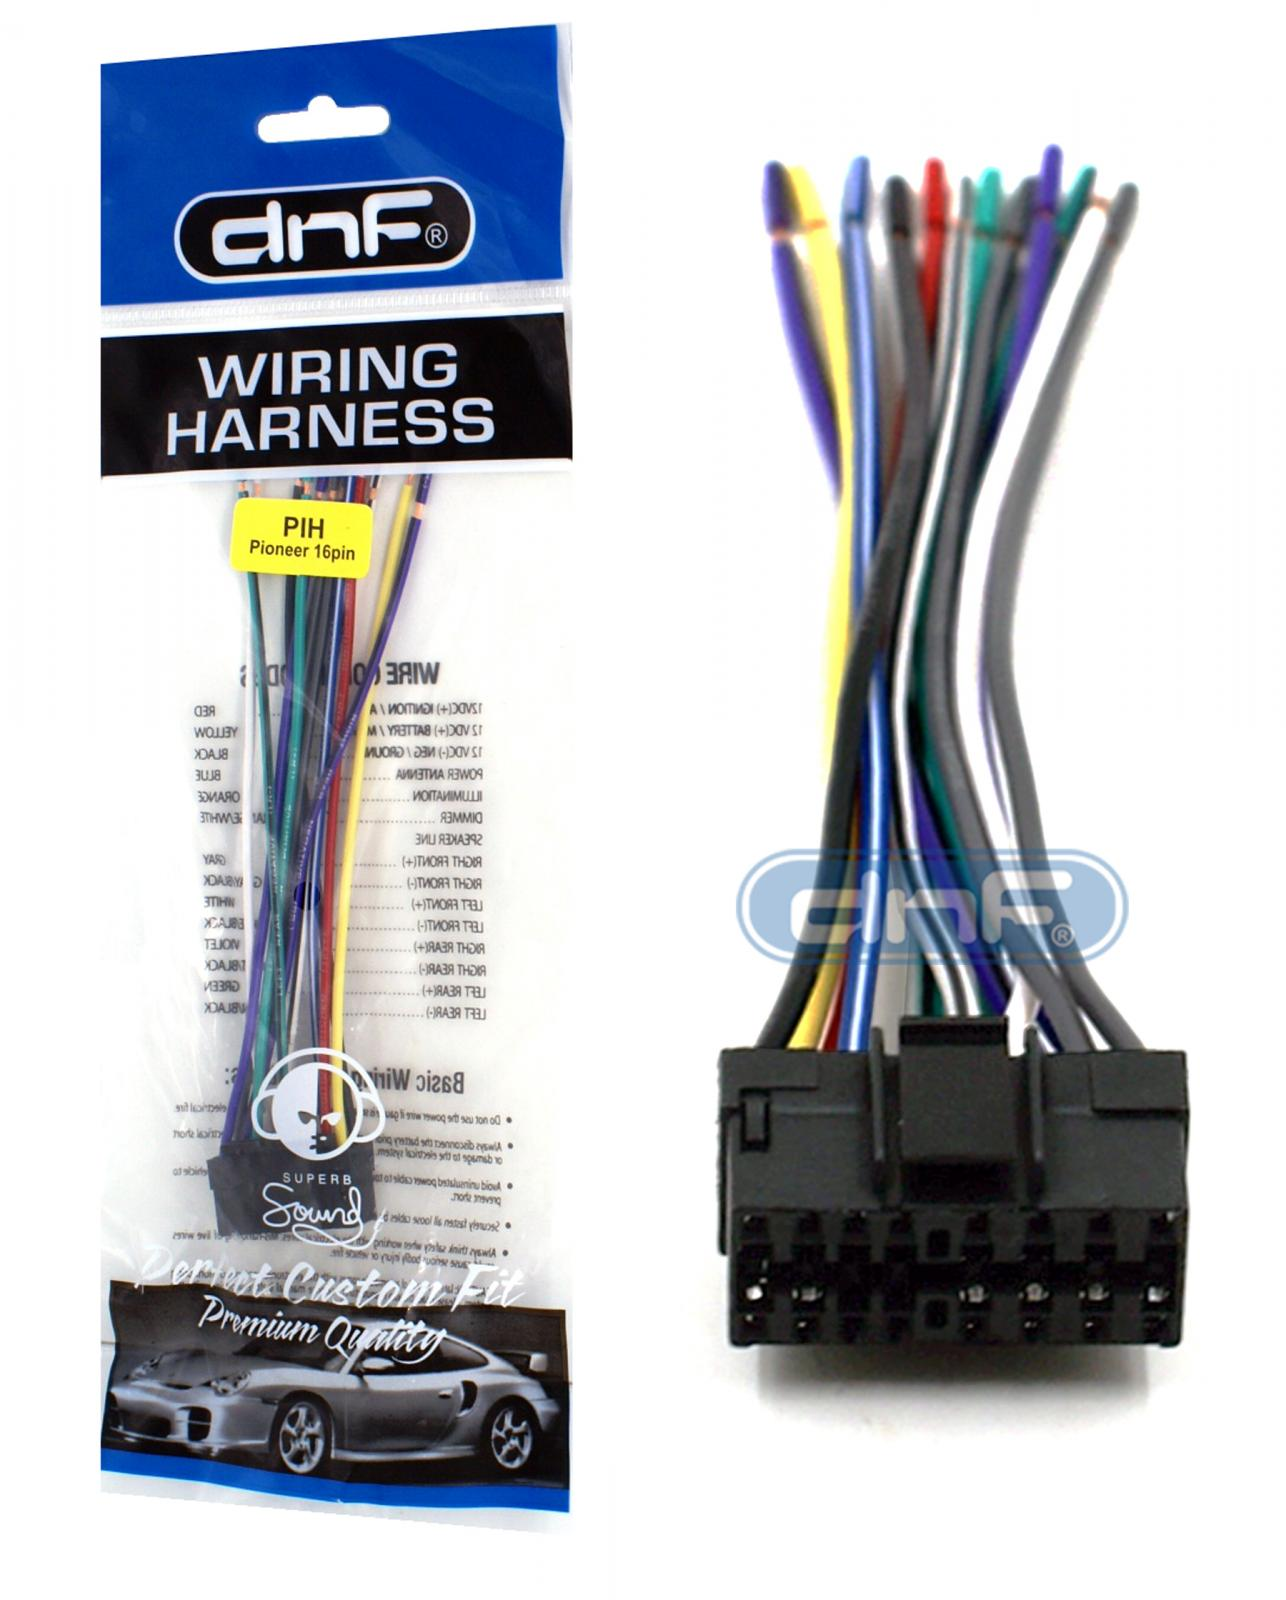 pioneer deh 1100 deh 1150 deh 2100 deh 2150 wiring harness ships free today ebay [ 1286 x 1600 Pixel ]